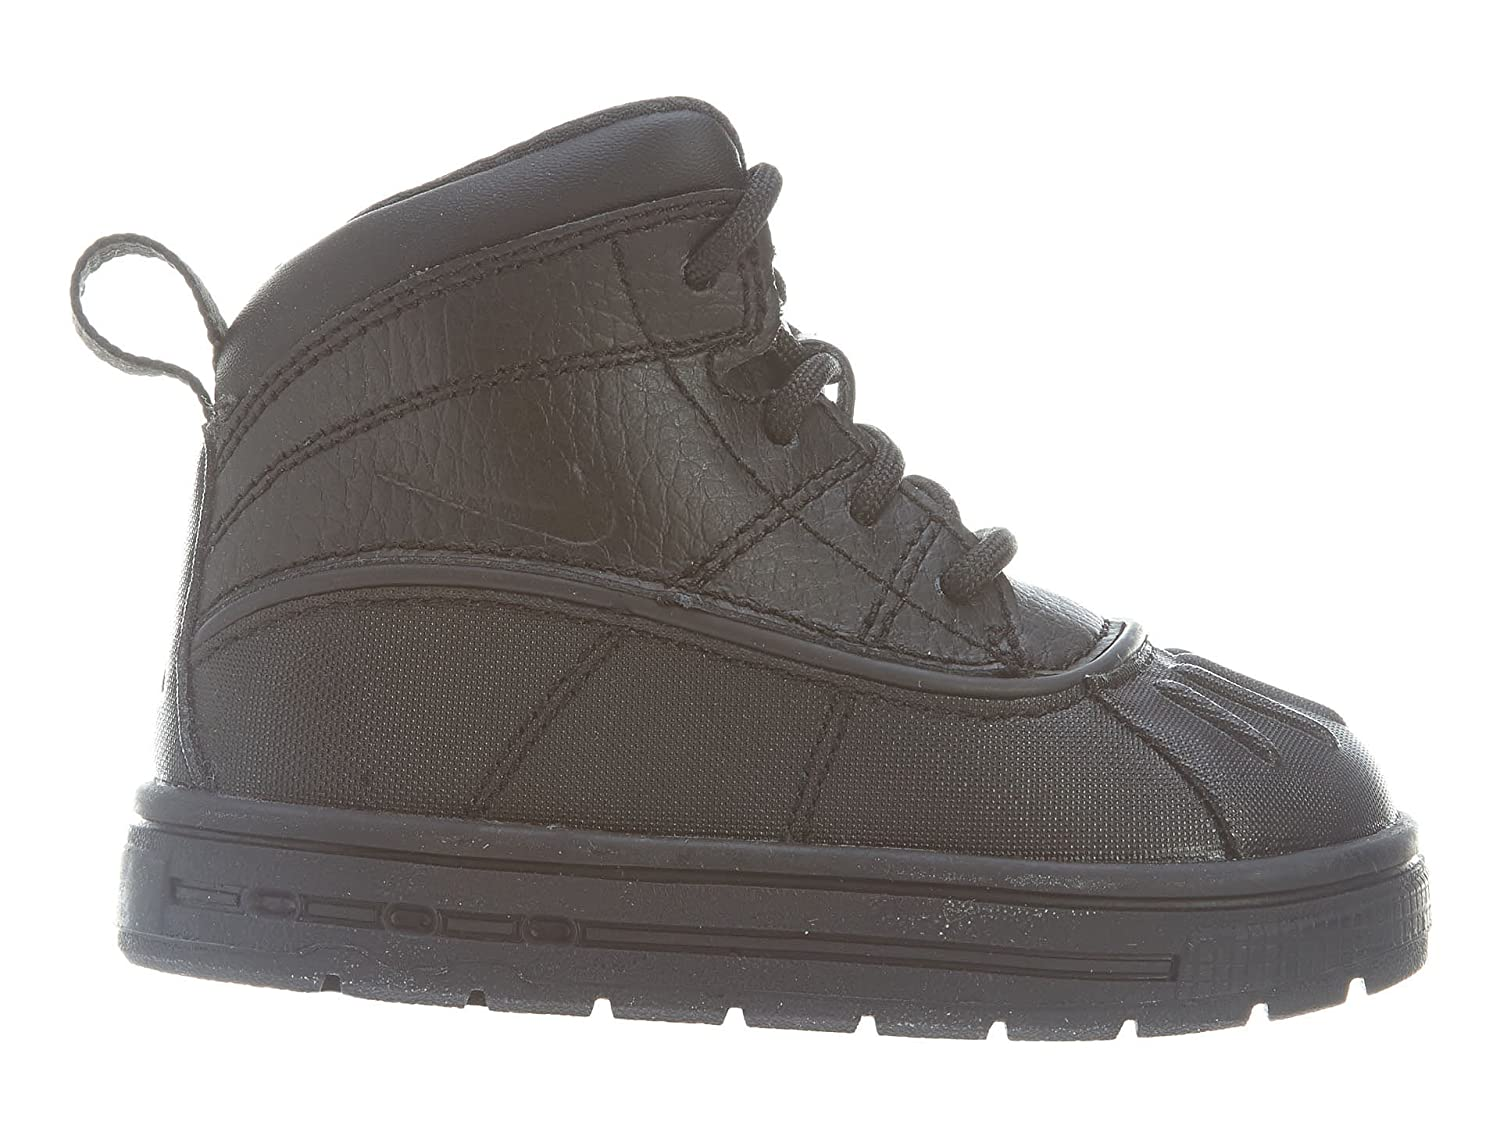 524874-001 Size 9.5 Toddlers 524874 Style NIKE Woodside 2 High Td